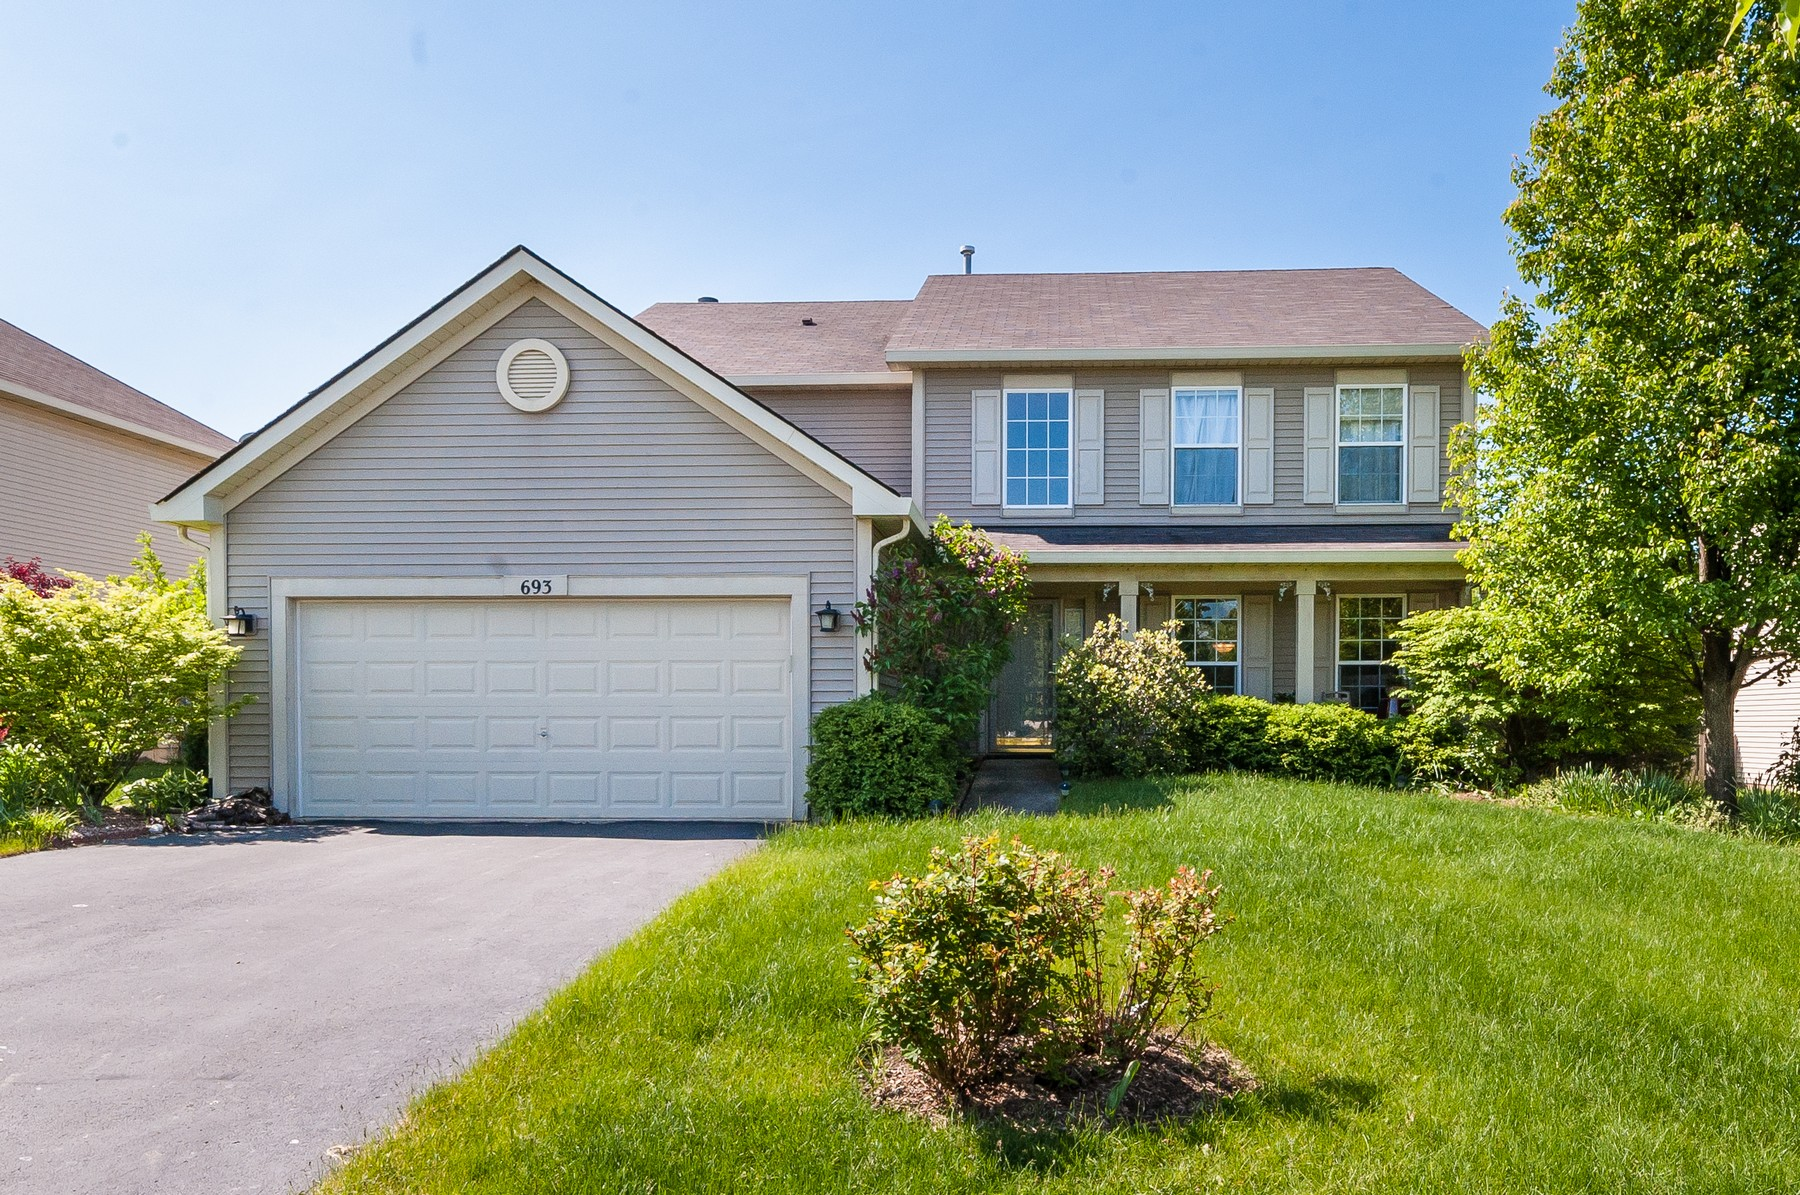 Single Family Home for Sale at Beautiful Home on Quiet Street 693 W briarcliff Road Bolingbrook, Illinois, 60440 United States